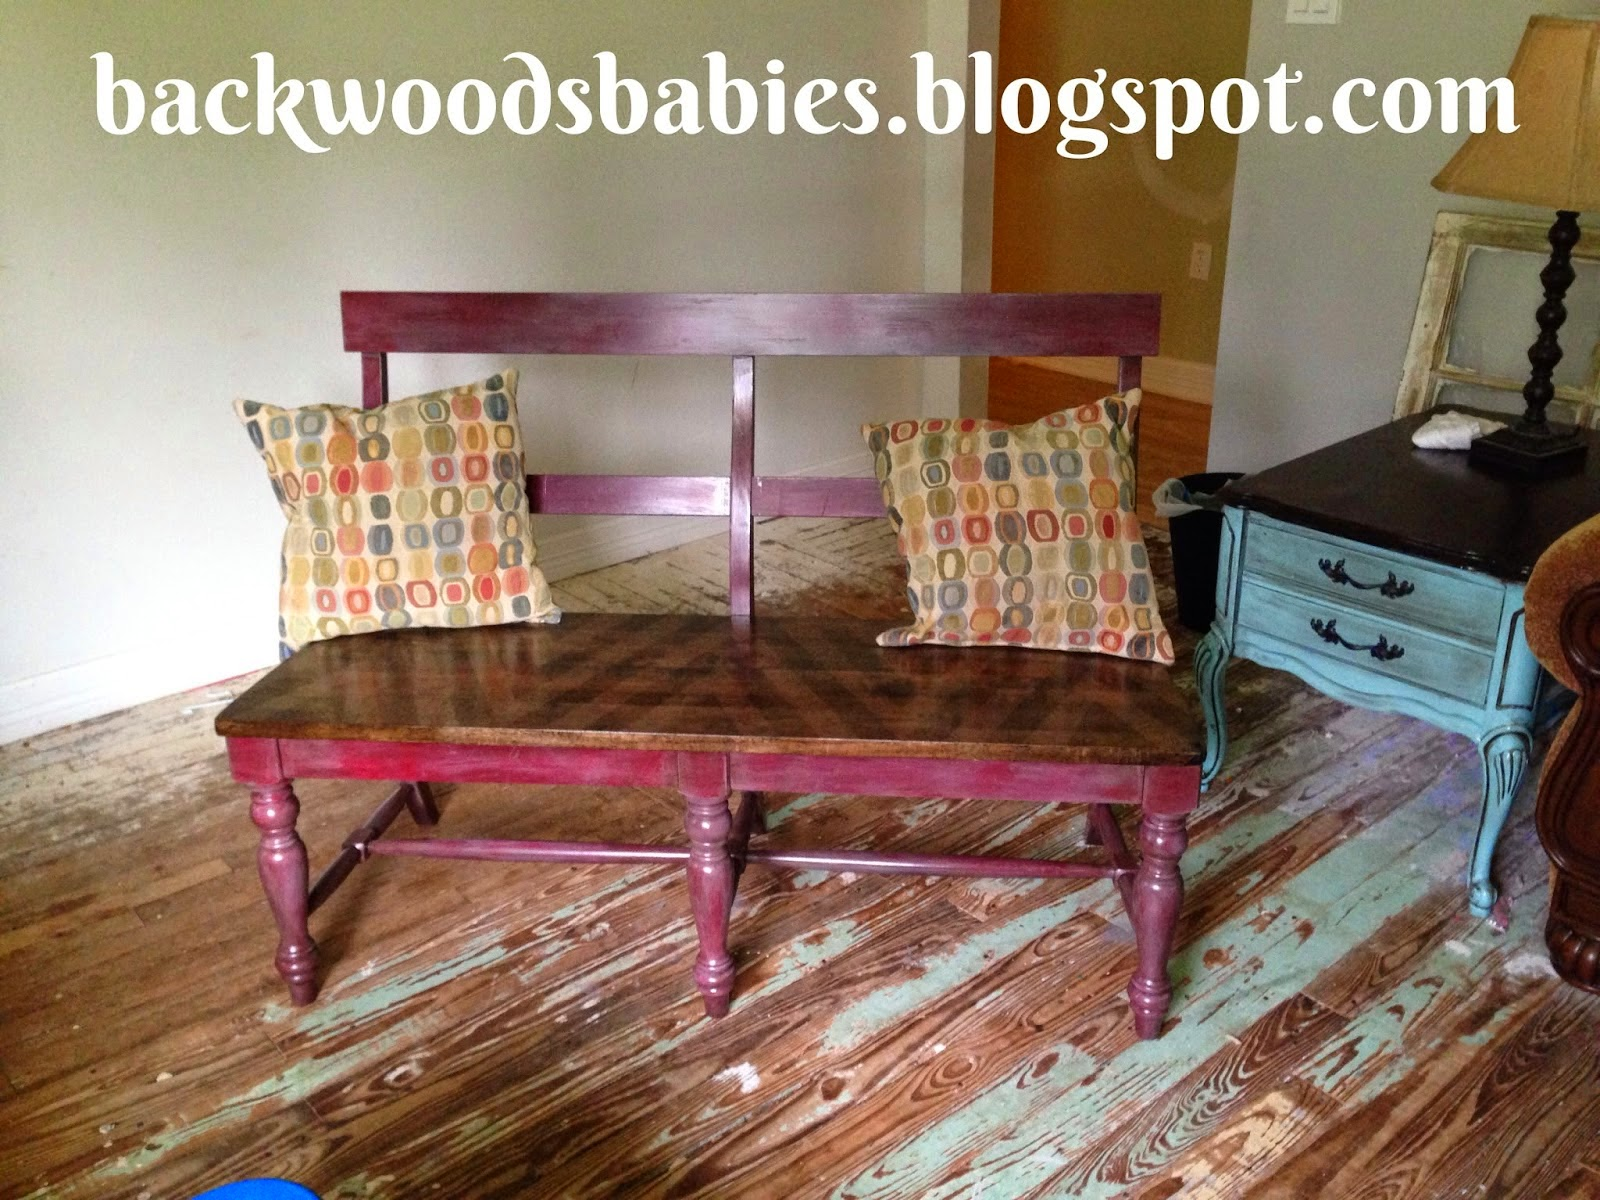 Backwoods Babies shared her Bench Makeover featured at One More Time Events.com